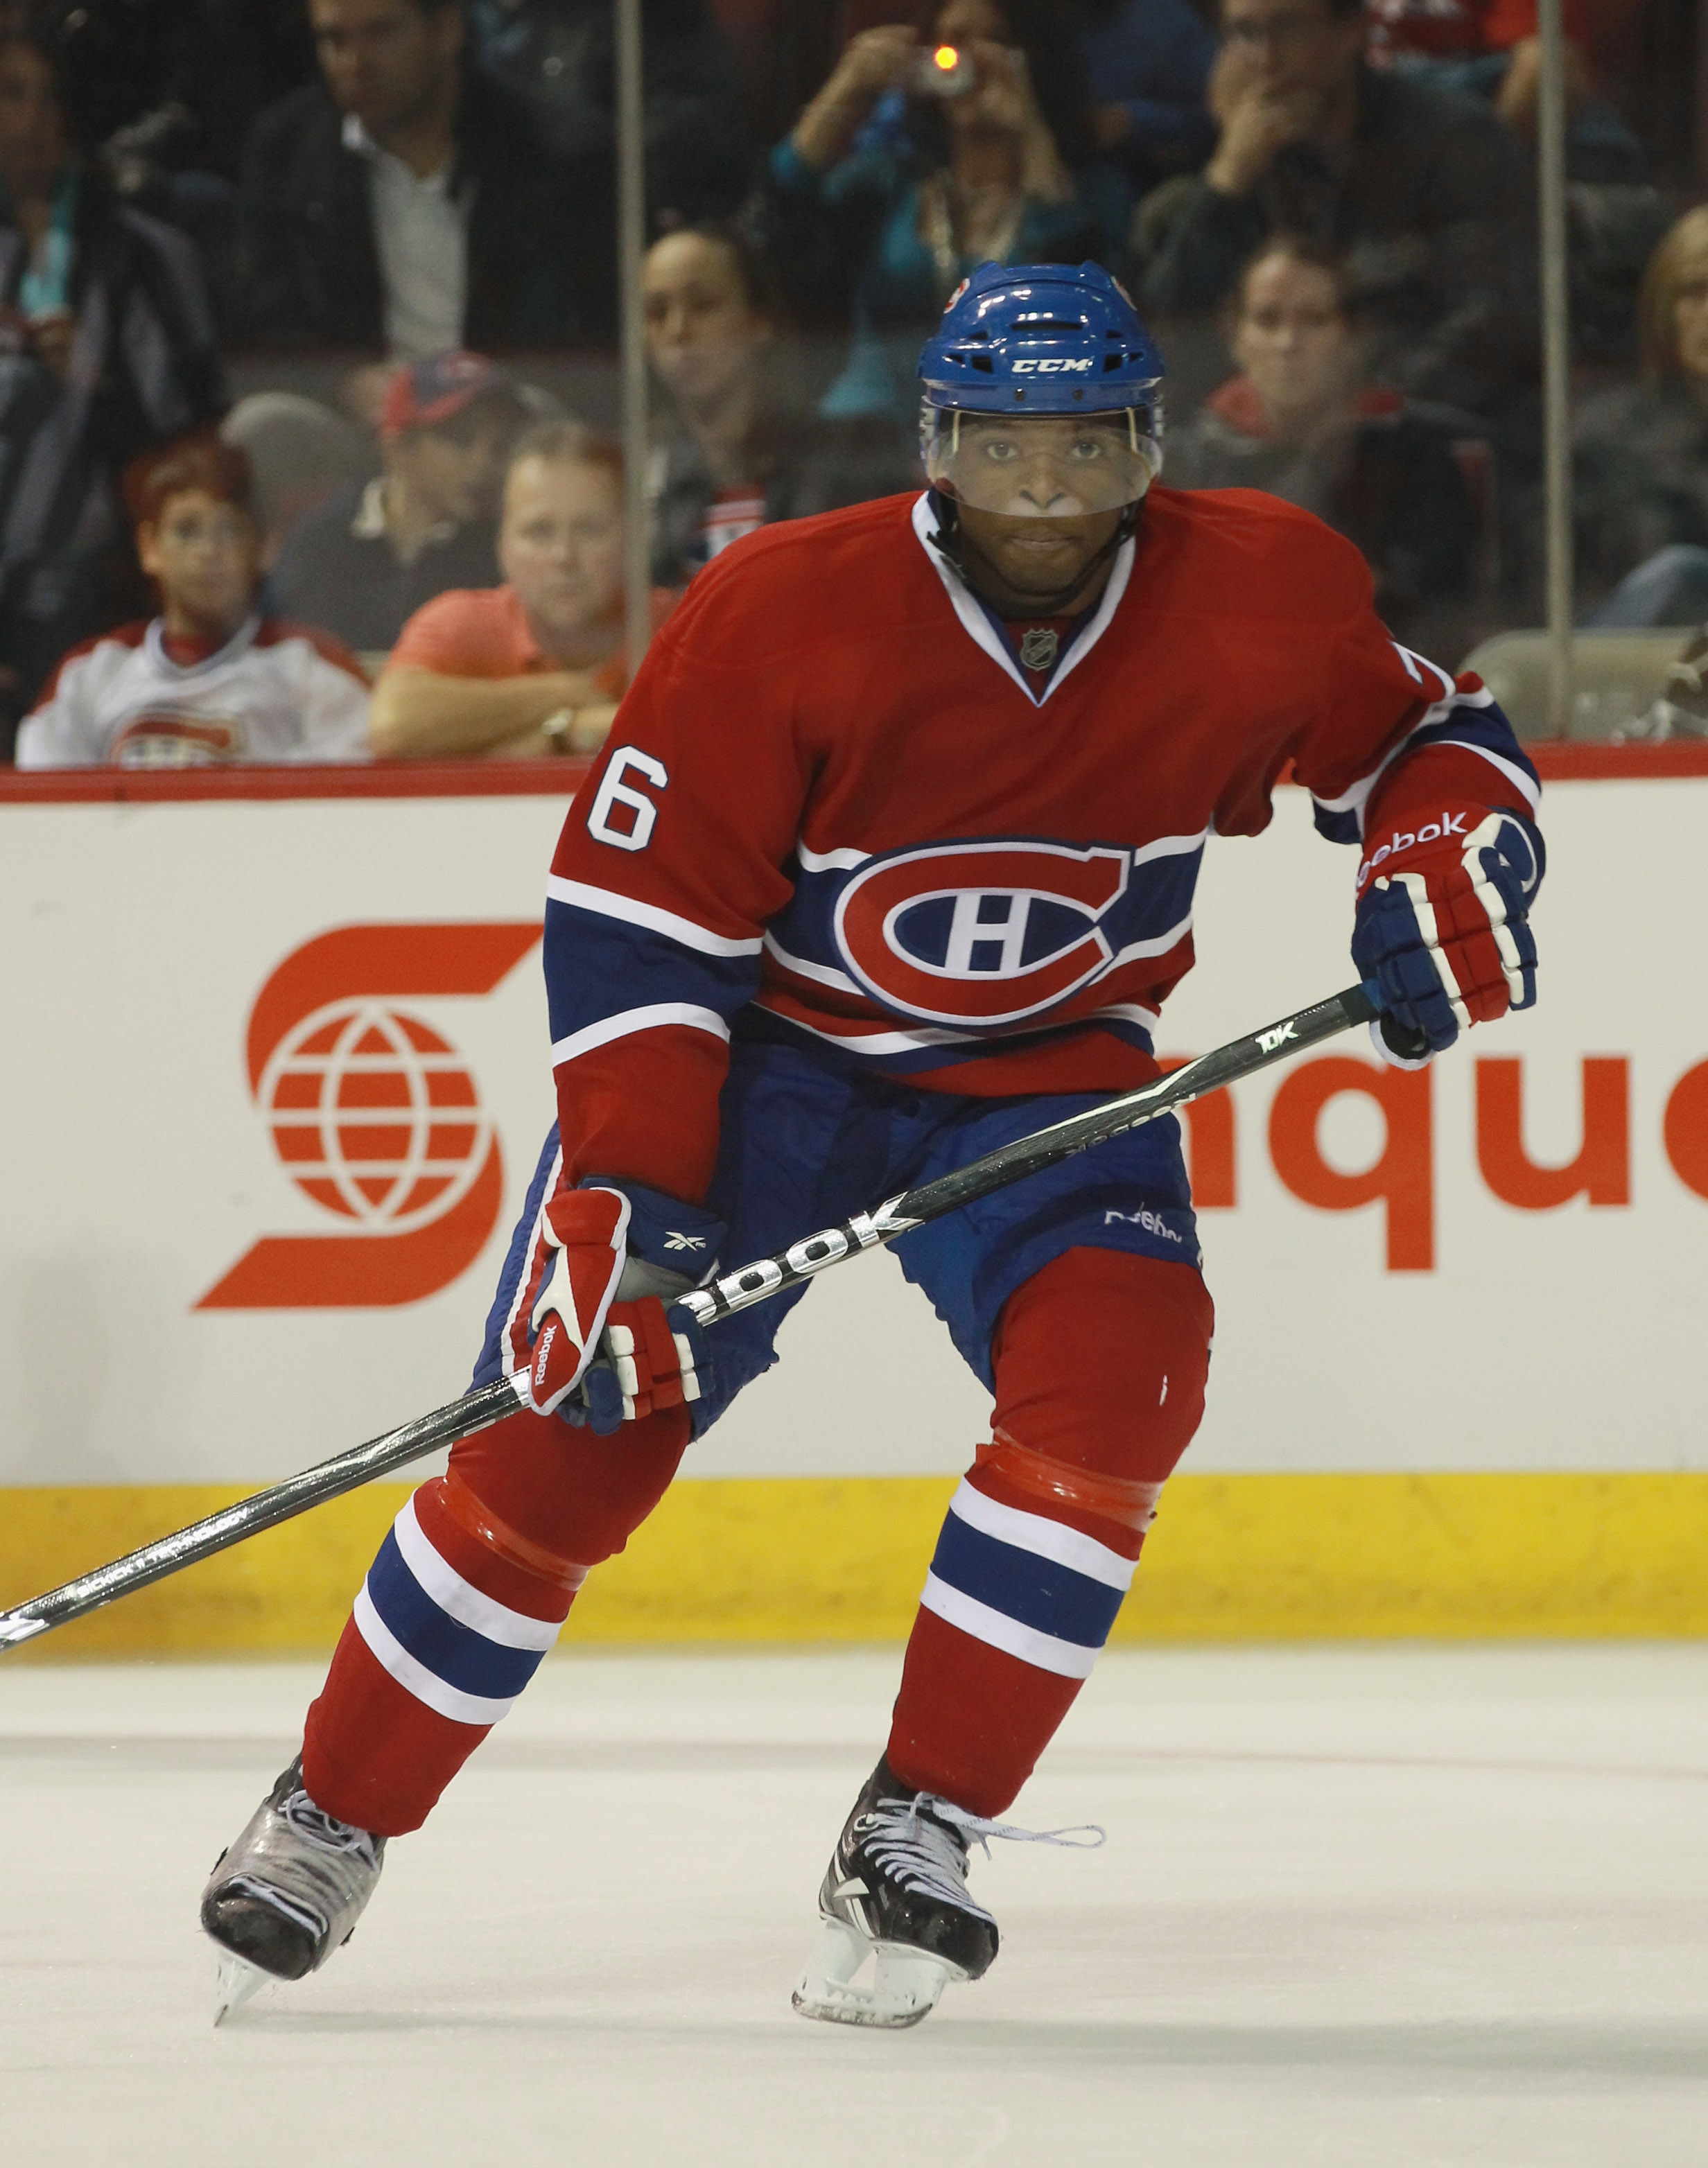 MONTREAL, QC - SEPTEMBER 24:  P.K. Subban #76 of the Montreal Canadiens skates against the Ottawa Senators at the Bell Centre on September 24, 2010 in Montreal, Canada. The Canadiens defeated the Senators 4-2.  (Photo by Bruce Bennett/Getty Images)